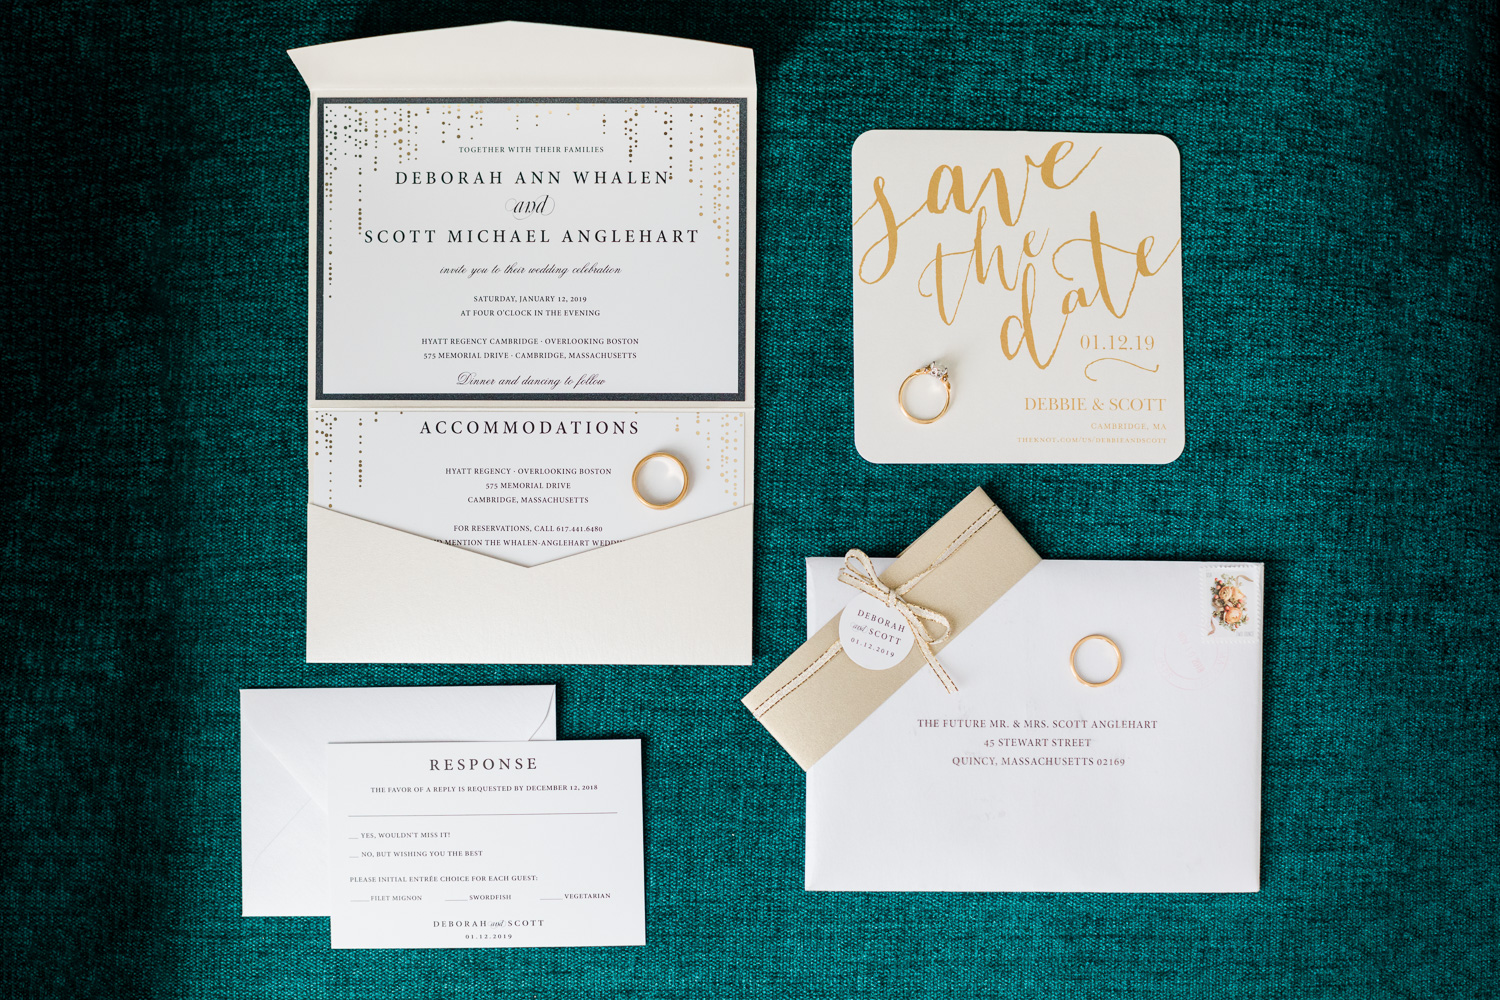 Invitation Suite with emerald background